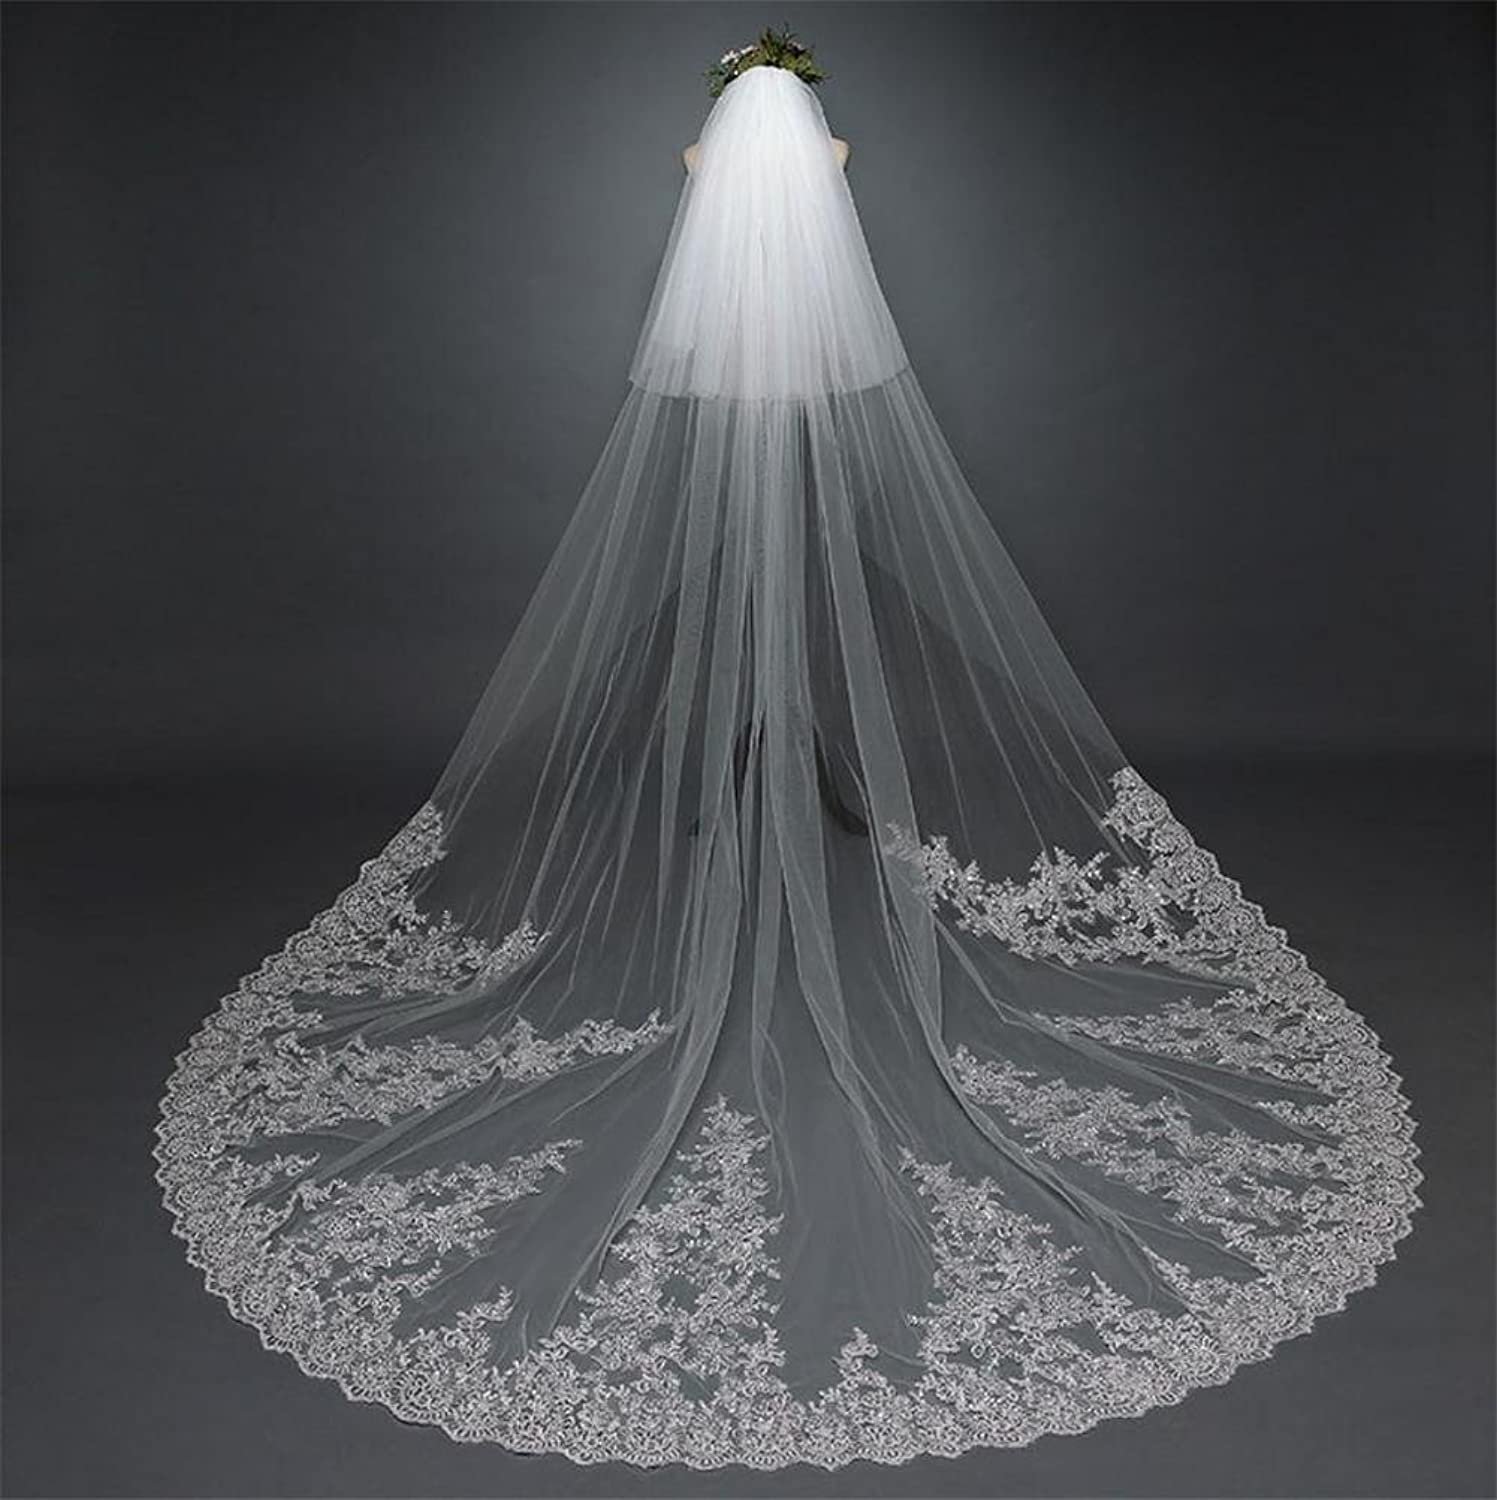 Bridal Veil White 3.0M Length Embroidered Sequins Lace Applique Lace Wedding Veil Long Bride Veils